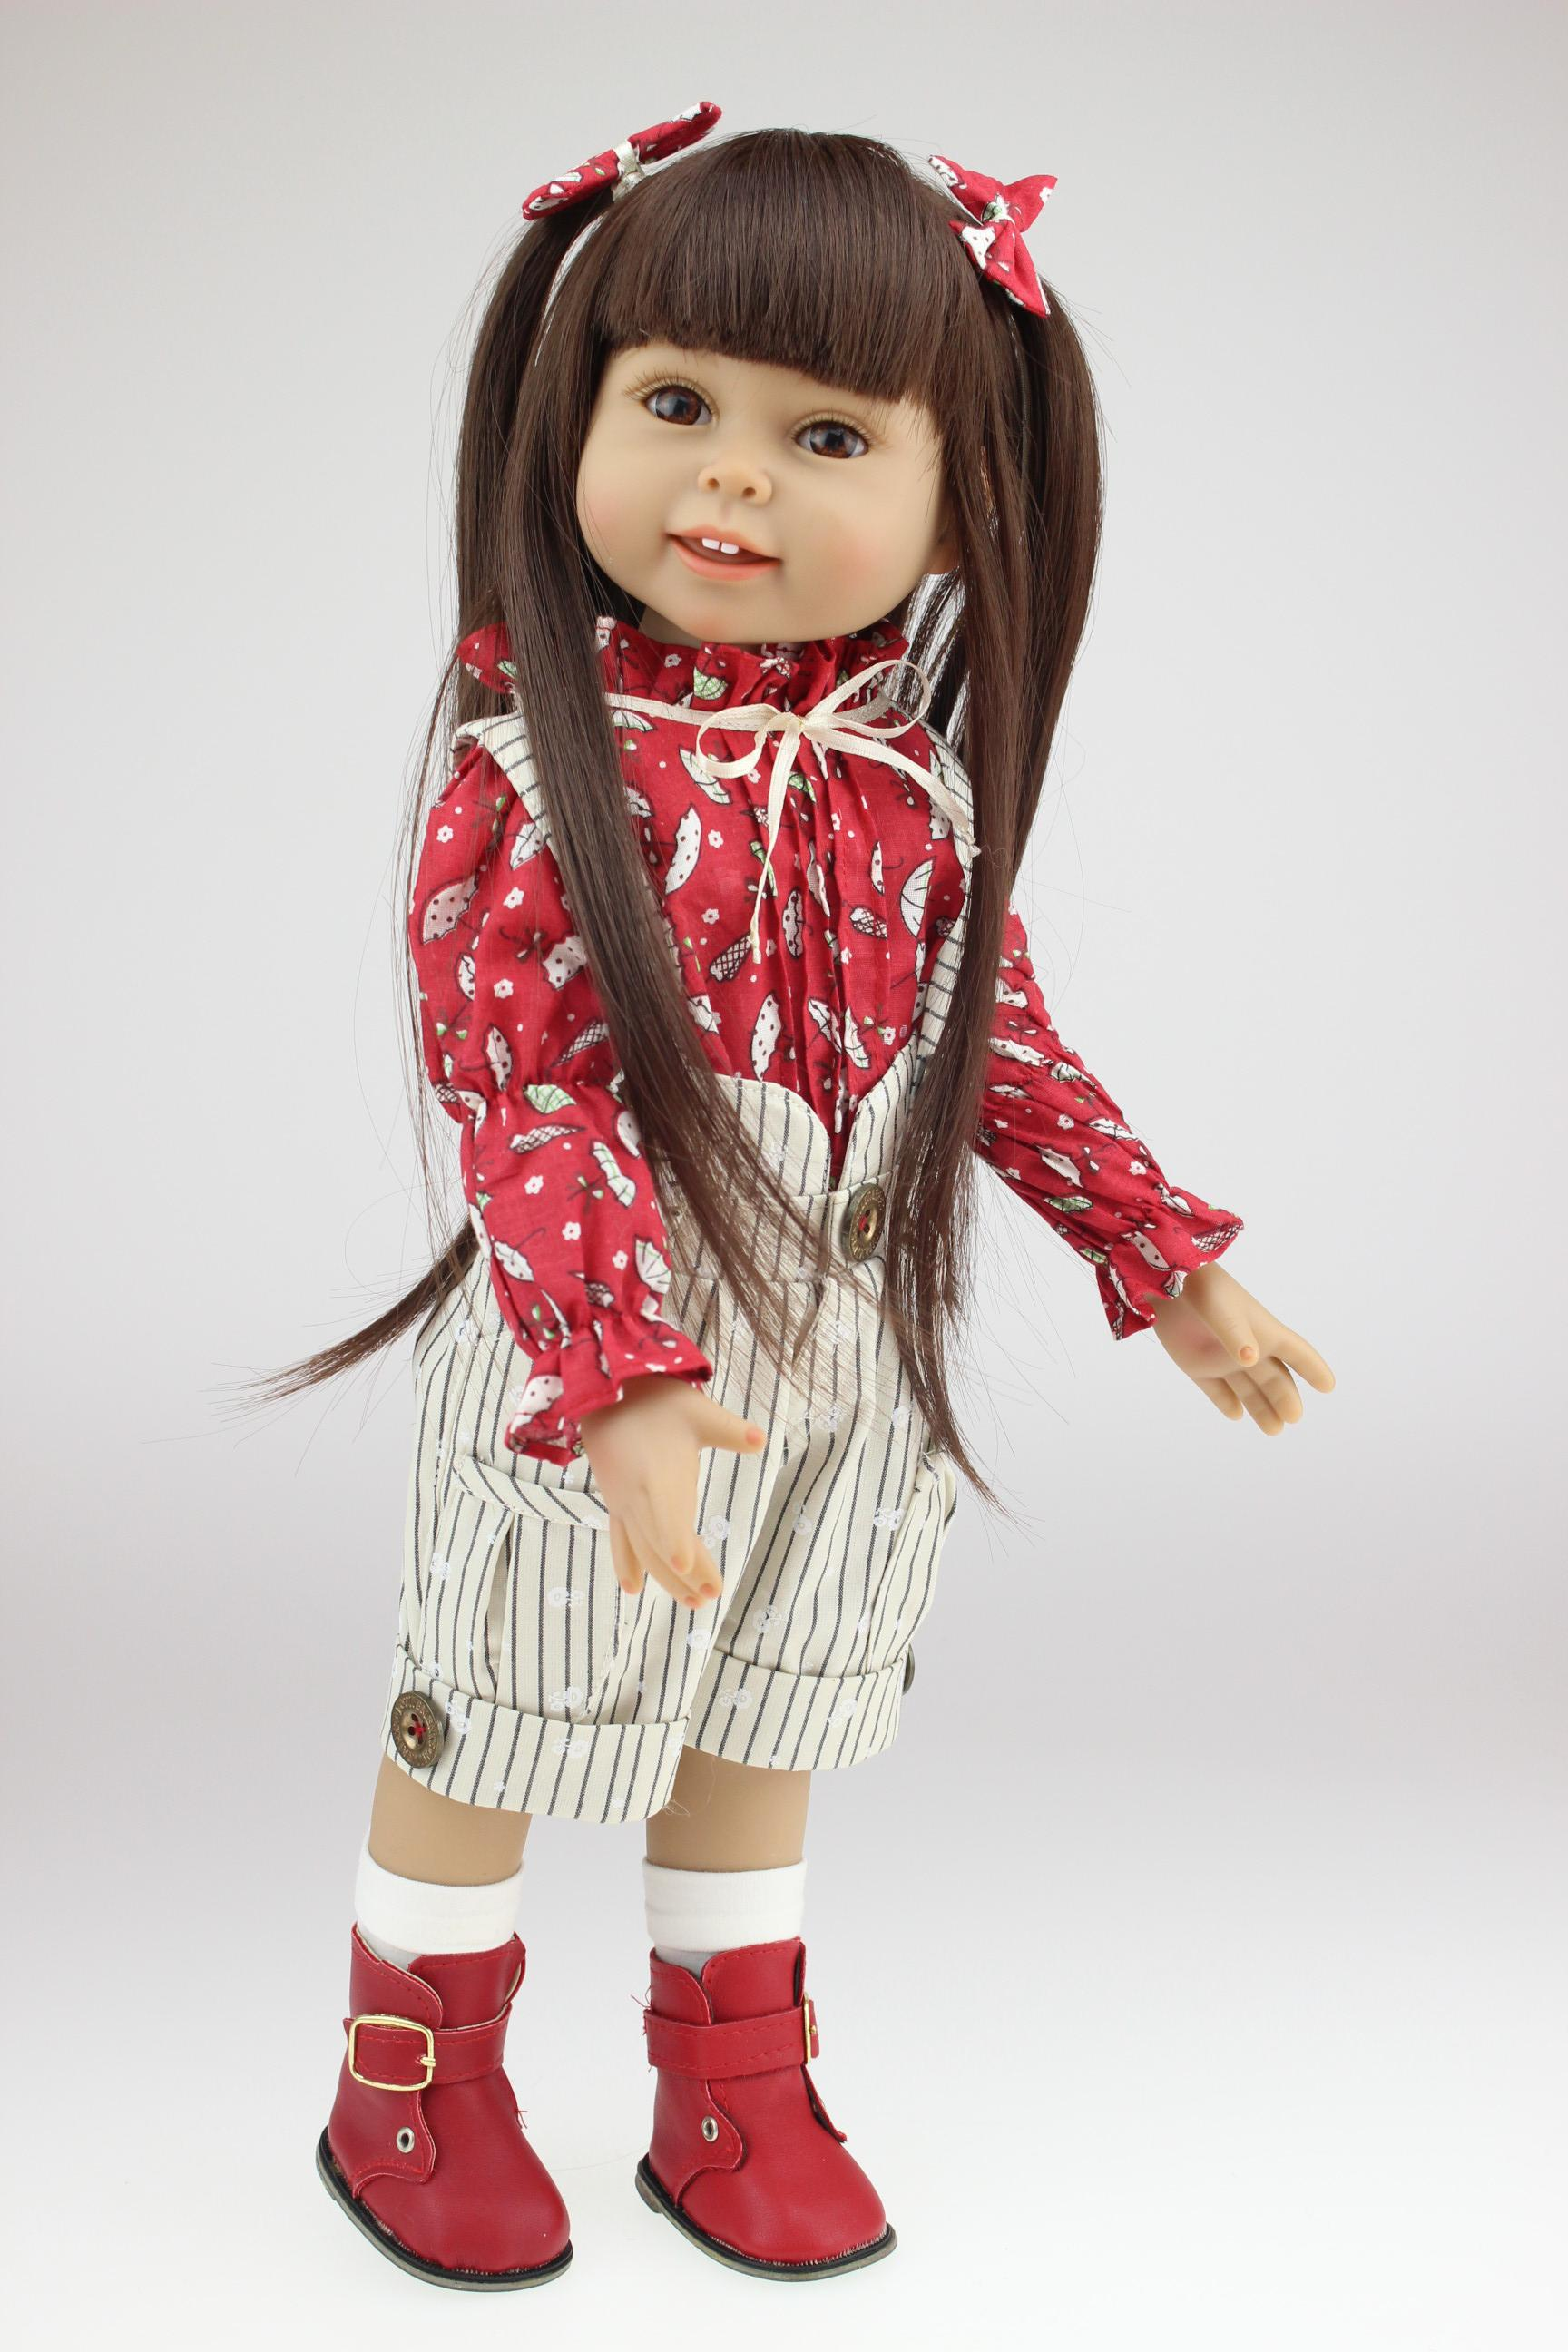 18 inch full vinyl american girl doll realistic little girl dolls toys and high end gifts in brown long hair cheap doll clothes for 18 inch dolls china - Ameeican Girl Doll